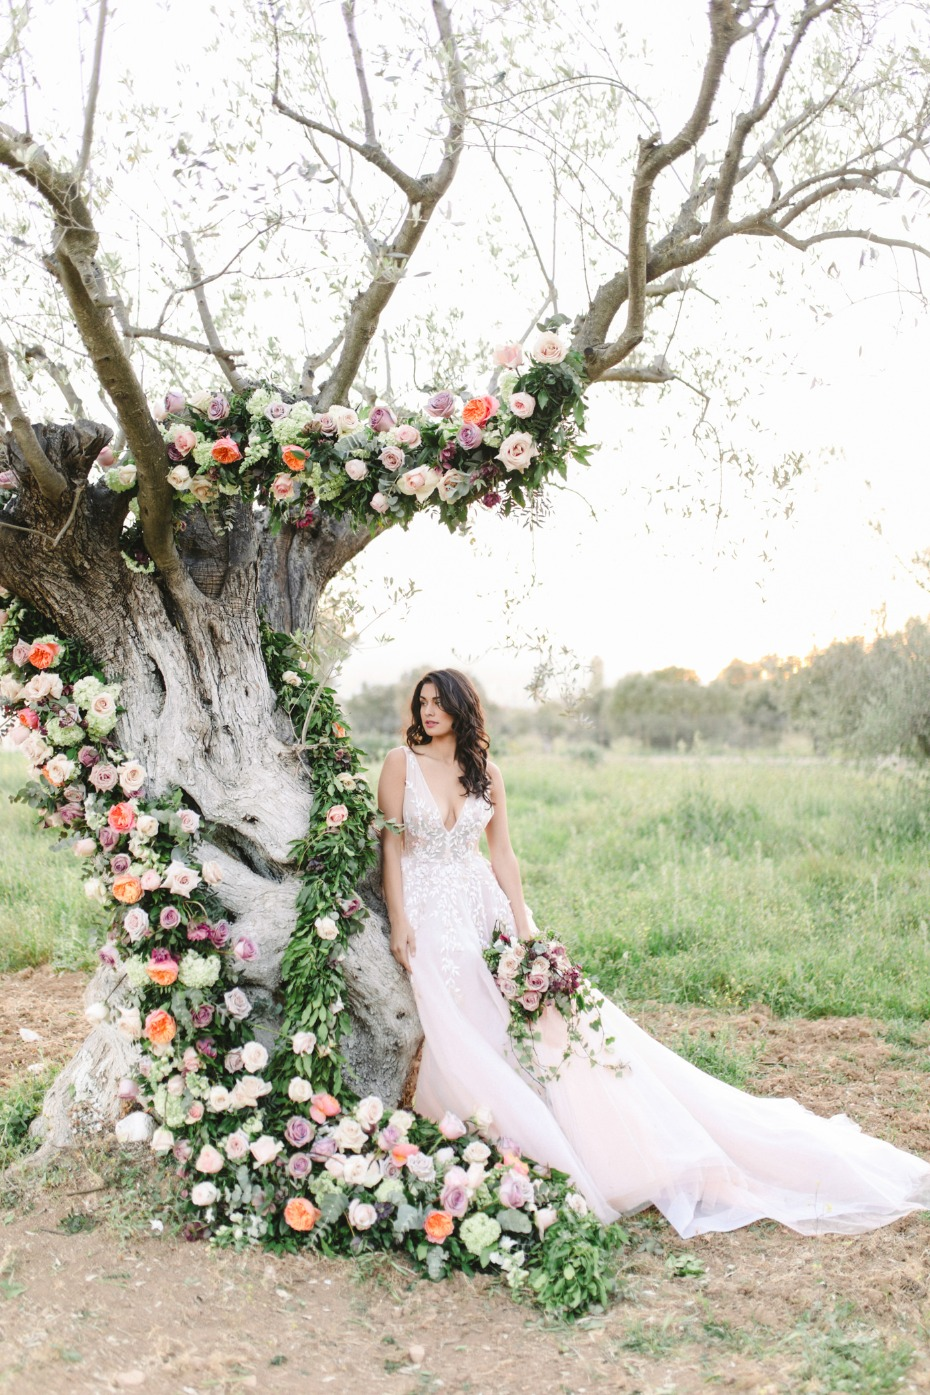 Nathalie Karam blush wedding dress